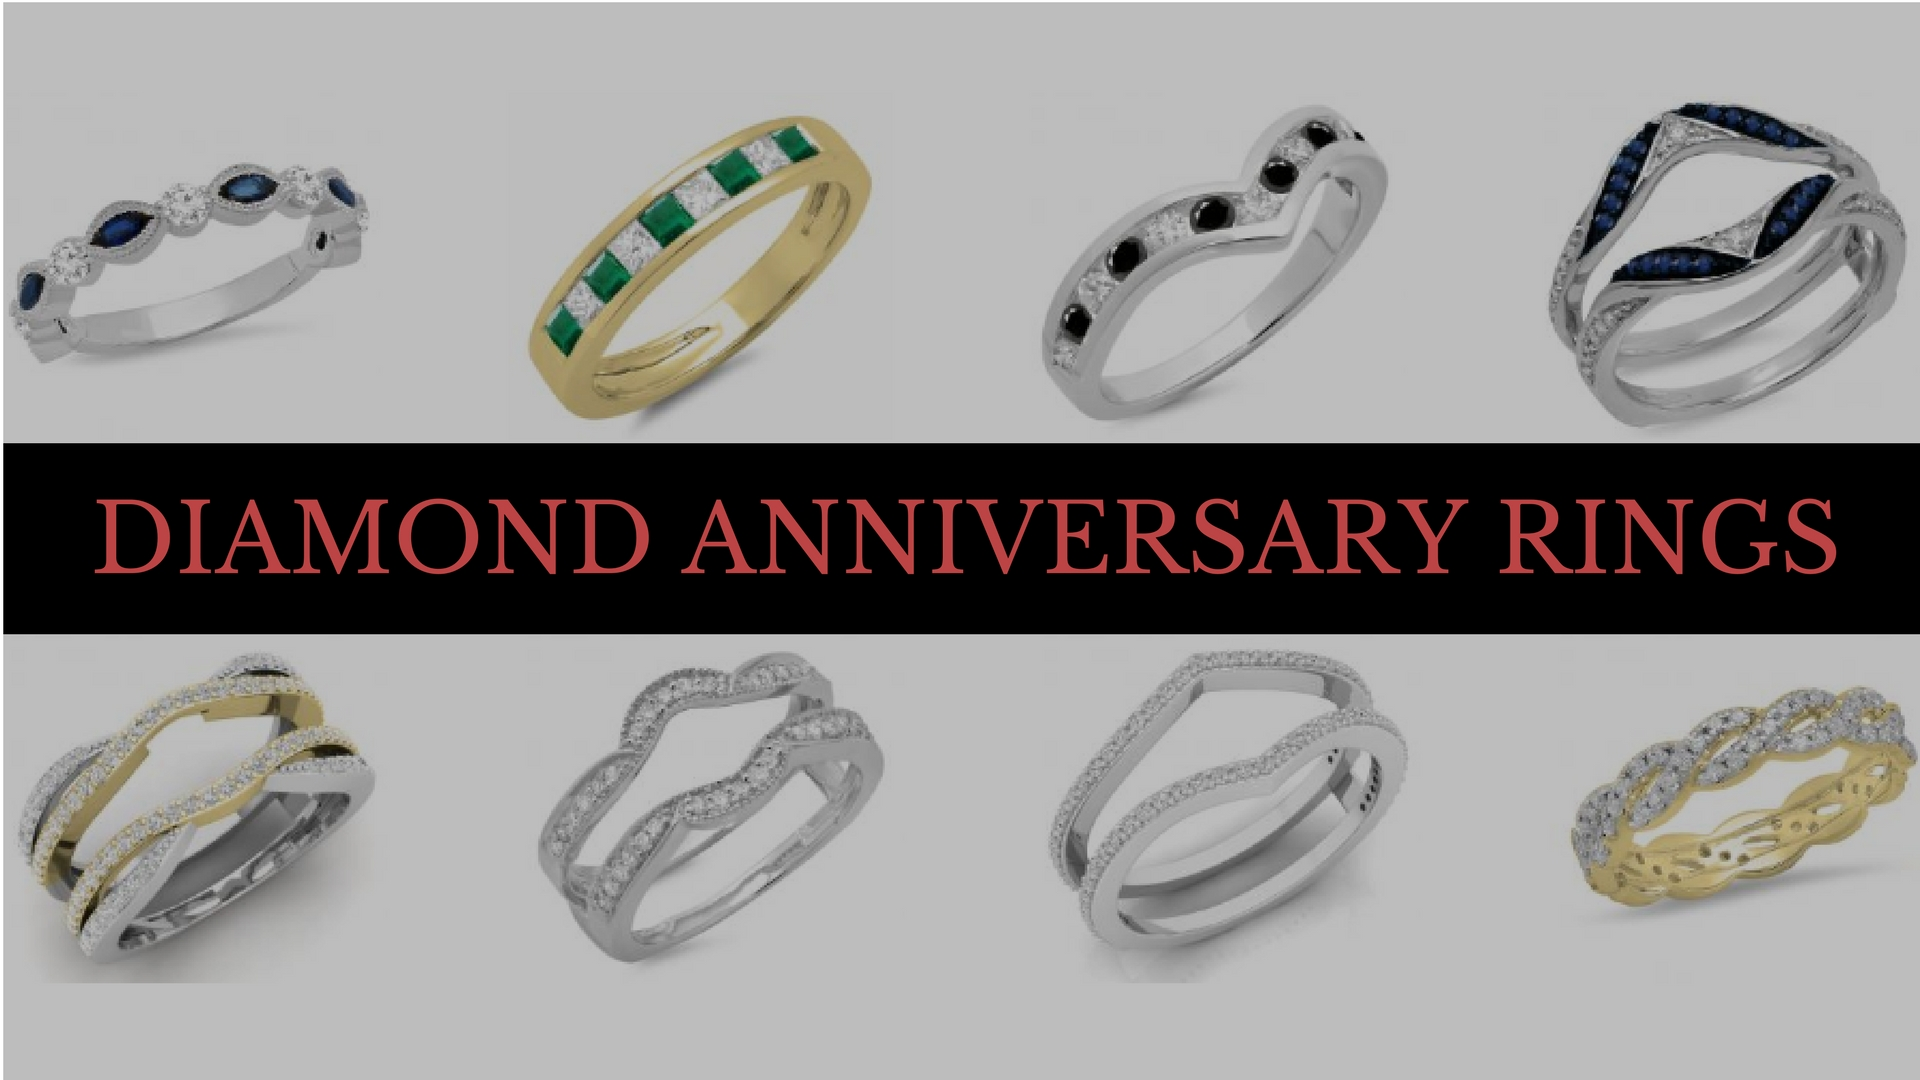 Diamond Anniversary Rings for Him and Her! - Dazzling rock